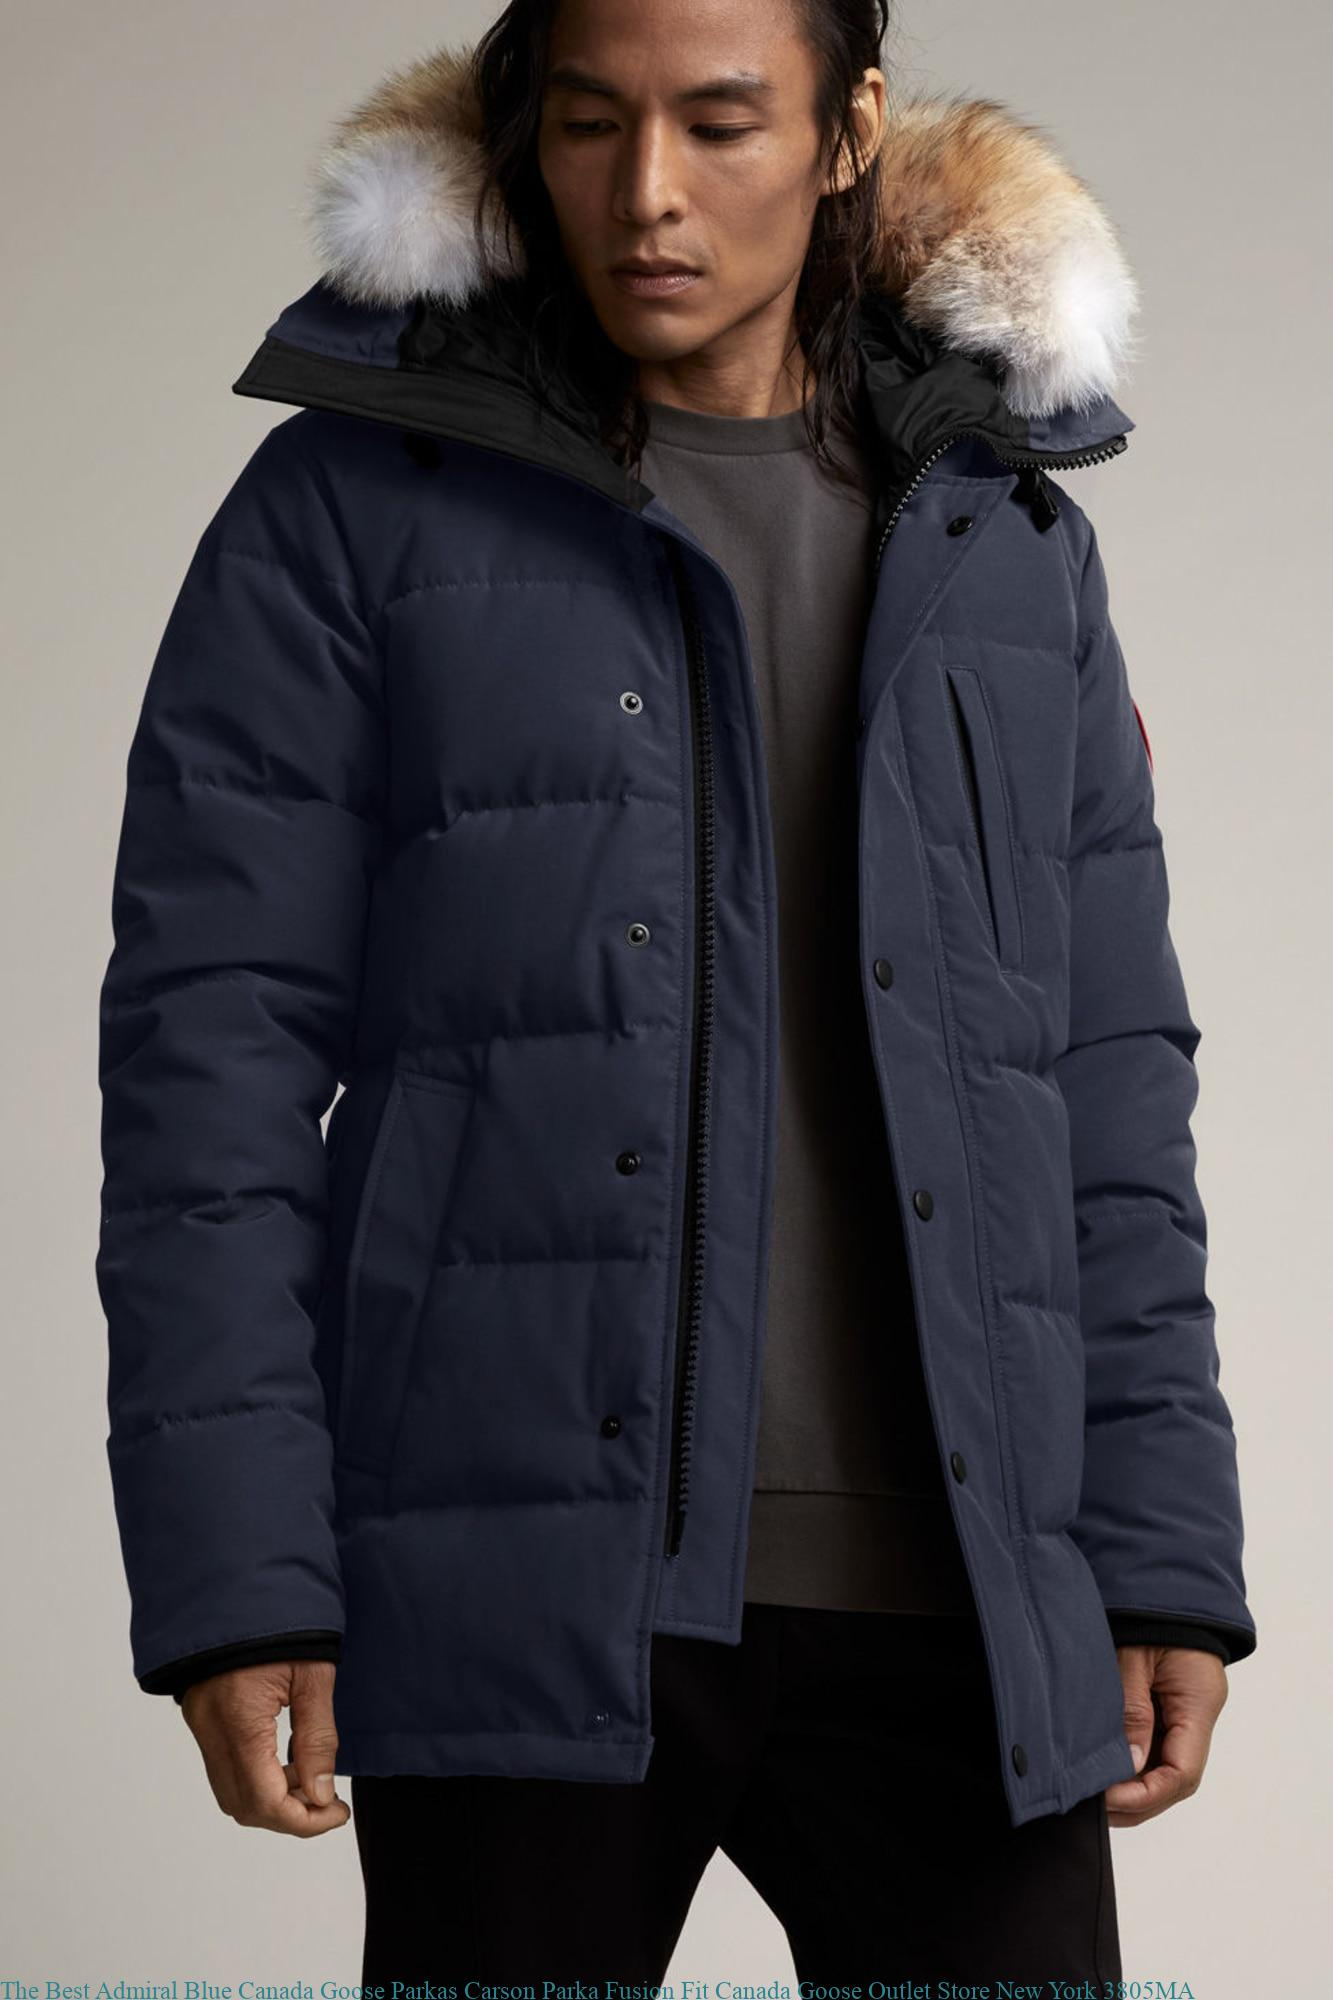 The Best Admiral Blue Canada Goose Parkas Carson Parka Fusion Fit Canada  Goose Outlet Store New York 3805MA – Cheap Canada Goose Outlet Store Jacket  ... 17f4402b64f6